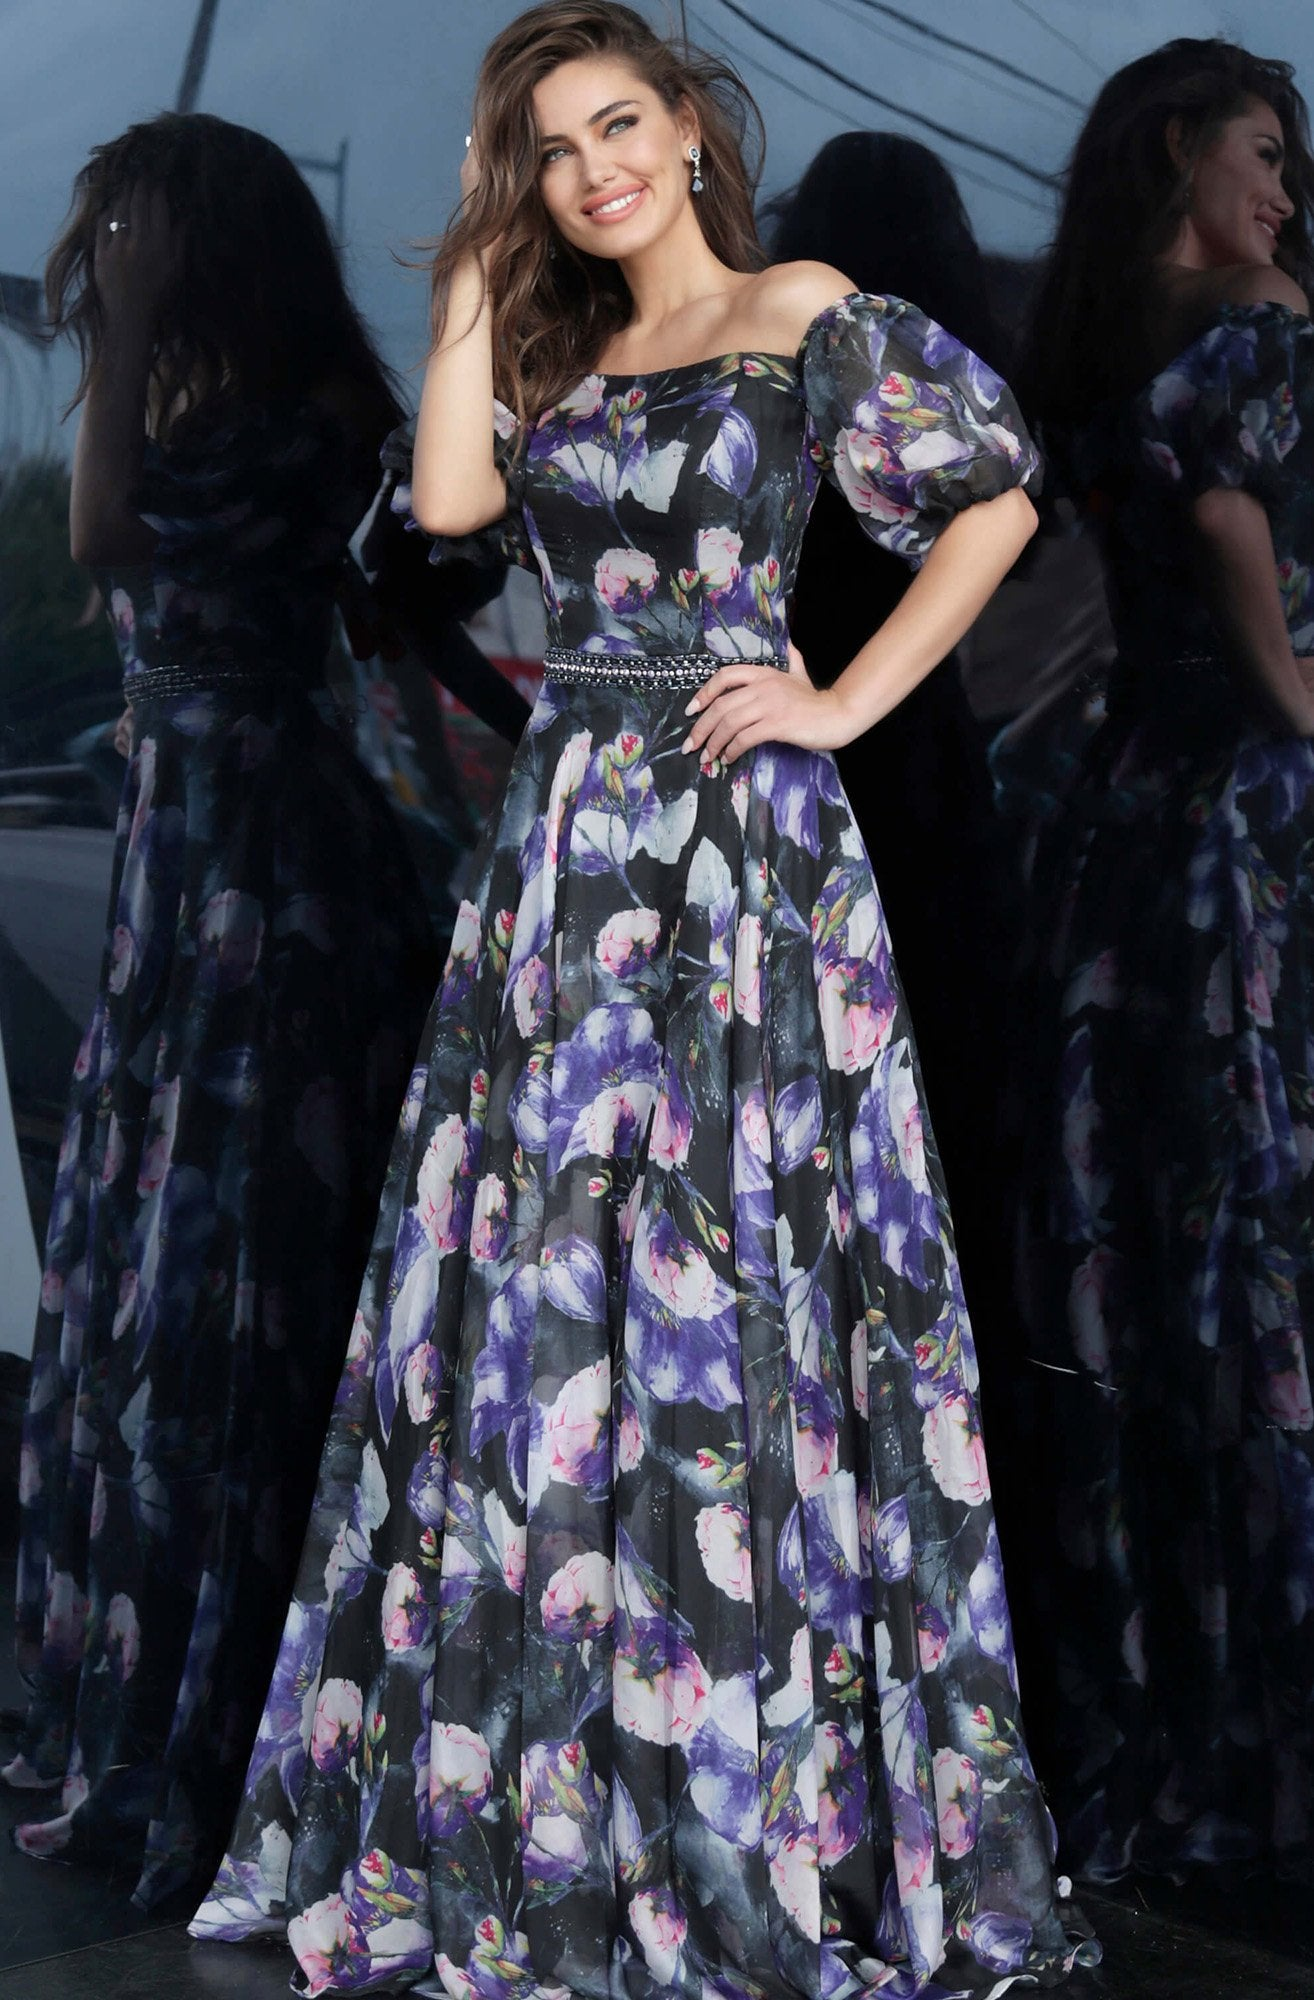 Jovani - 2022 Off-Shoulder Floral A-Line Dress in Black and Purple